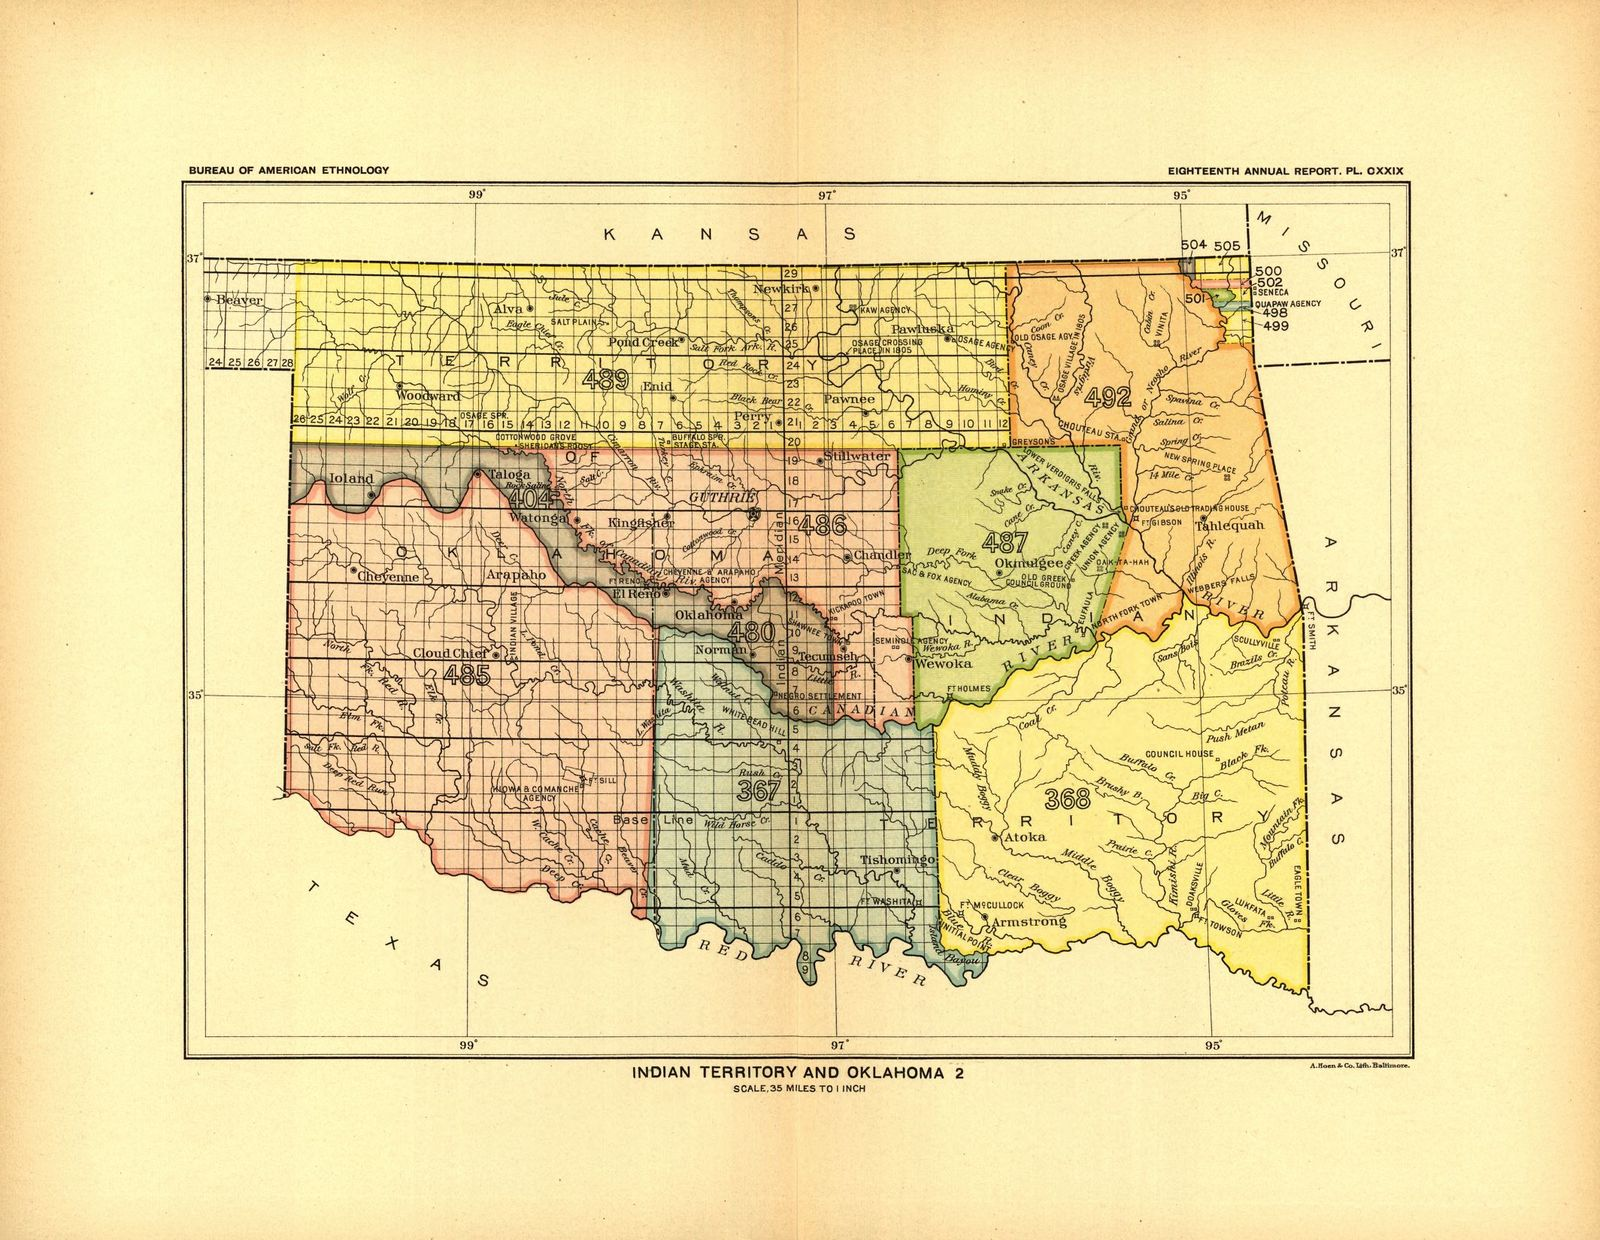 Indian land cessions in the United States,